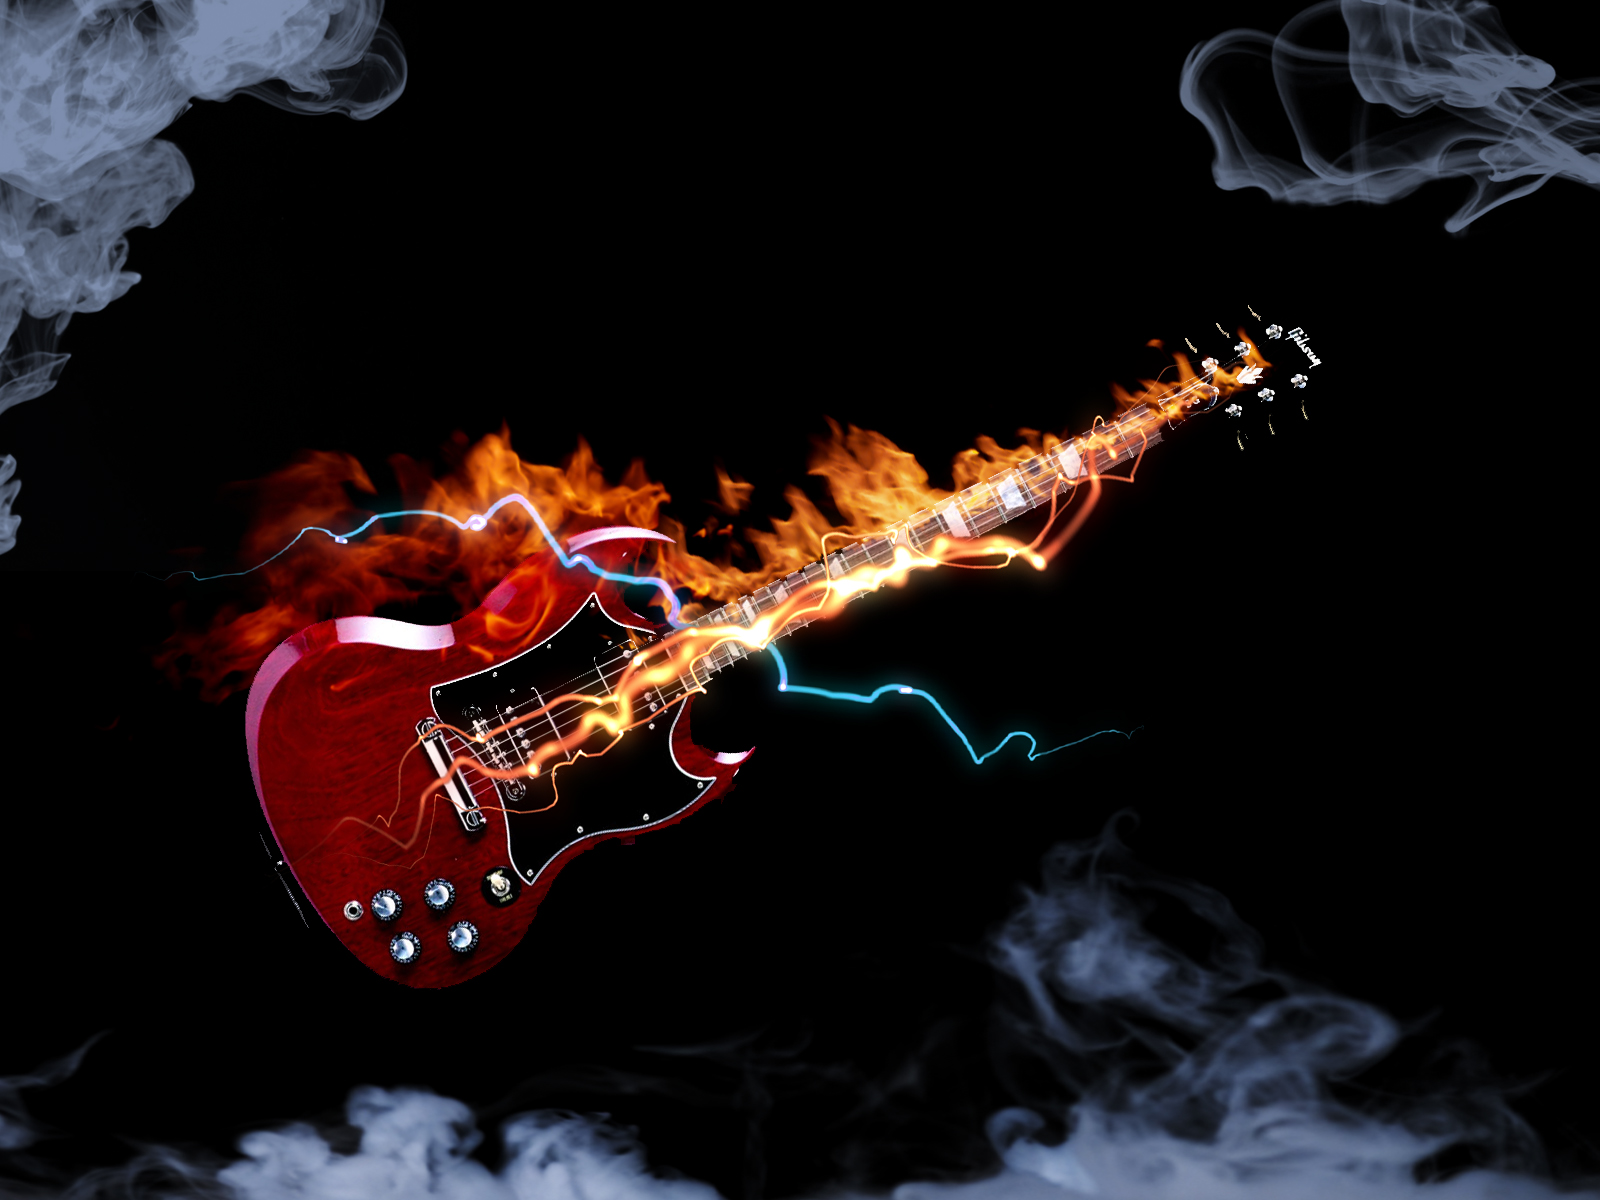 Gibson SG Electric Guitar HD Wallpaper Widescreen For Your PC Computer